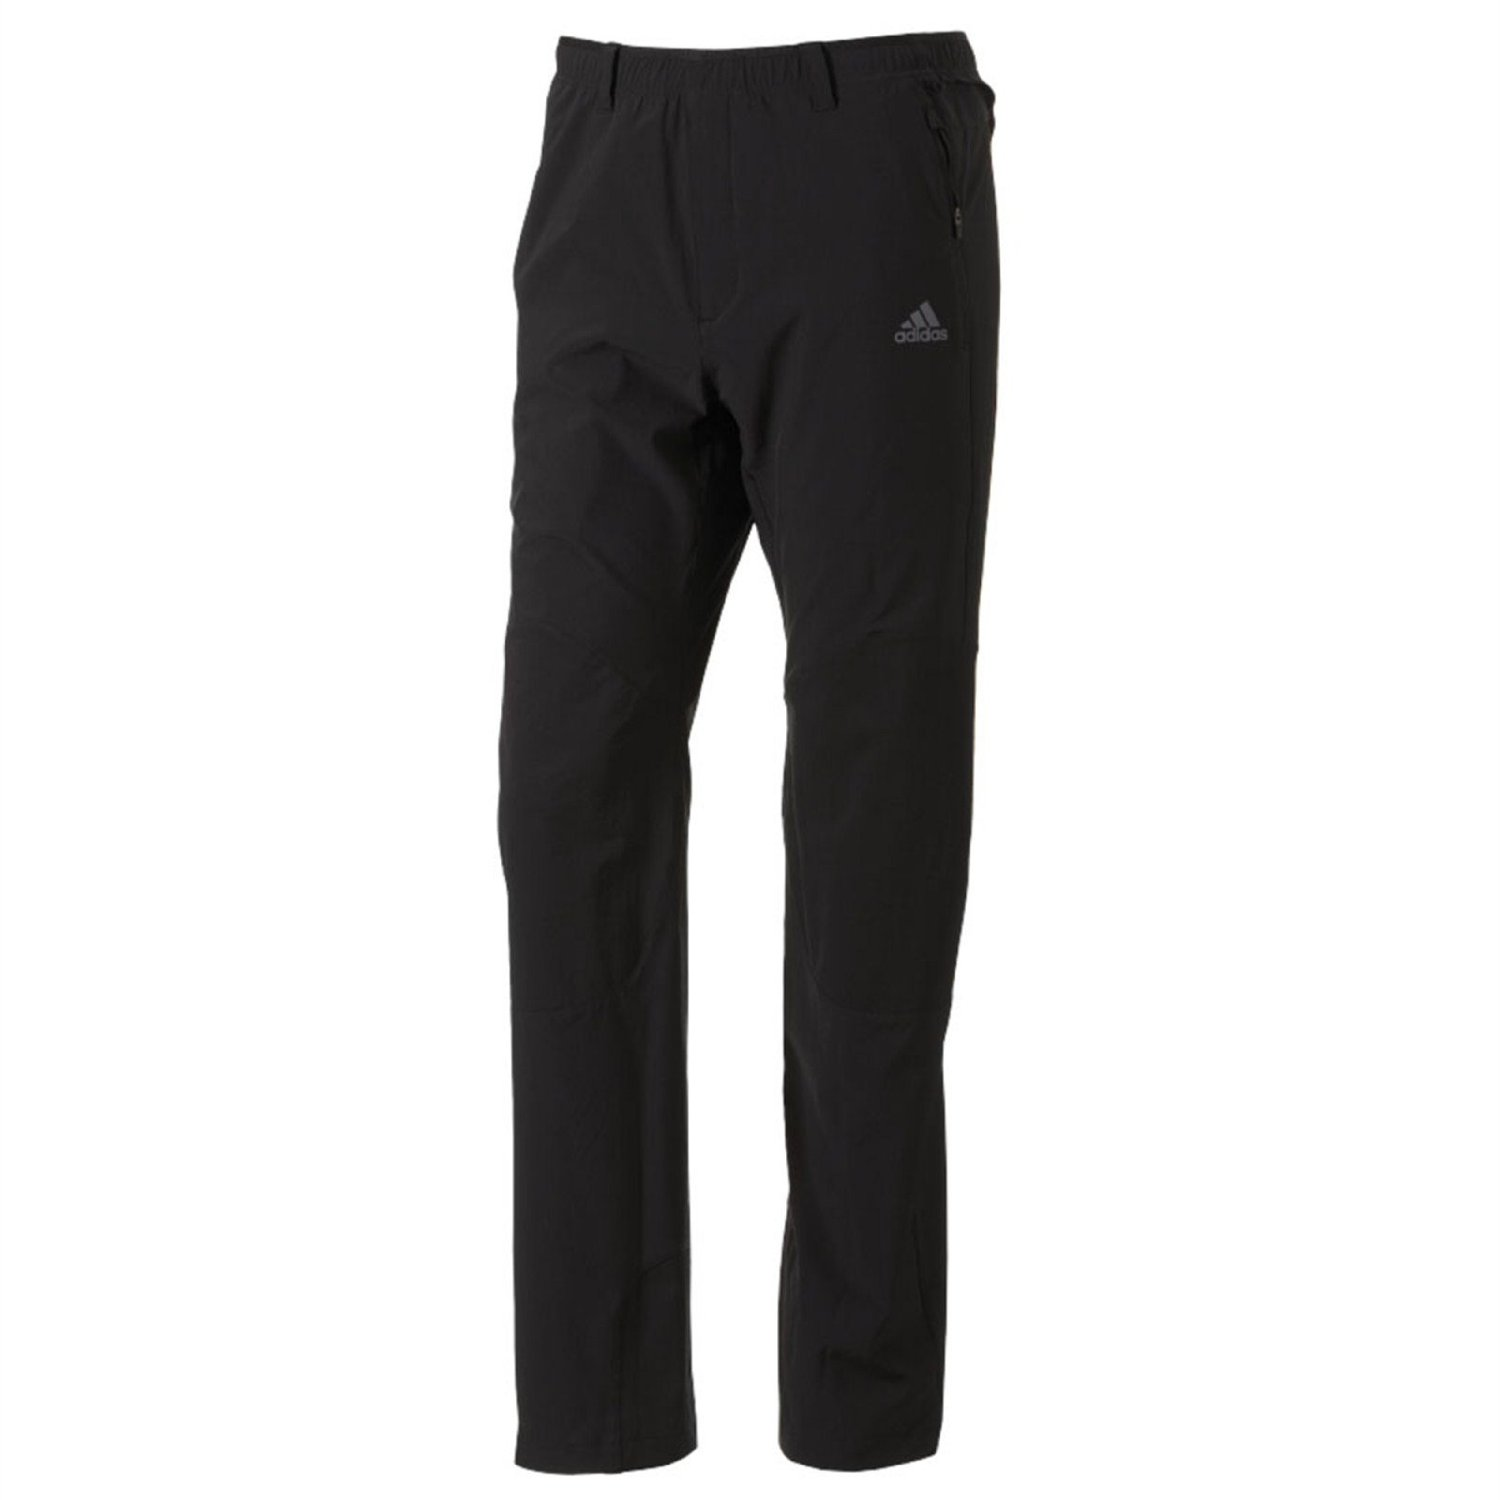 Image of Adidas - Mens Terrex Multi Pants